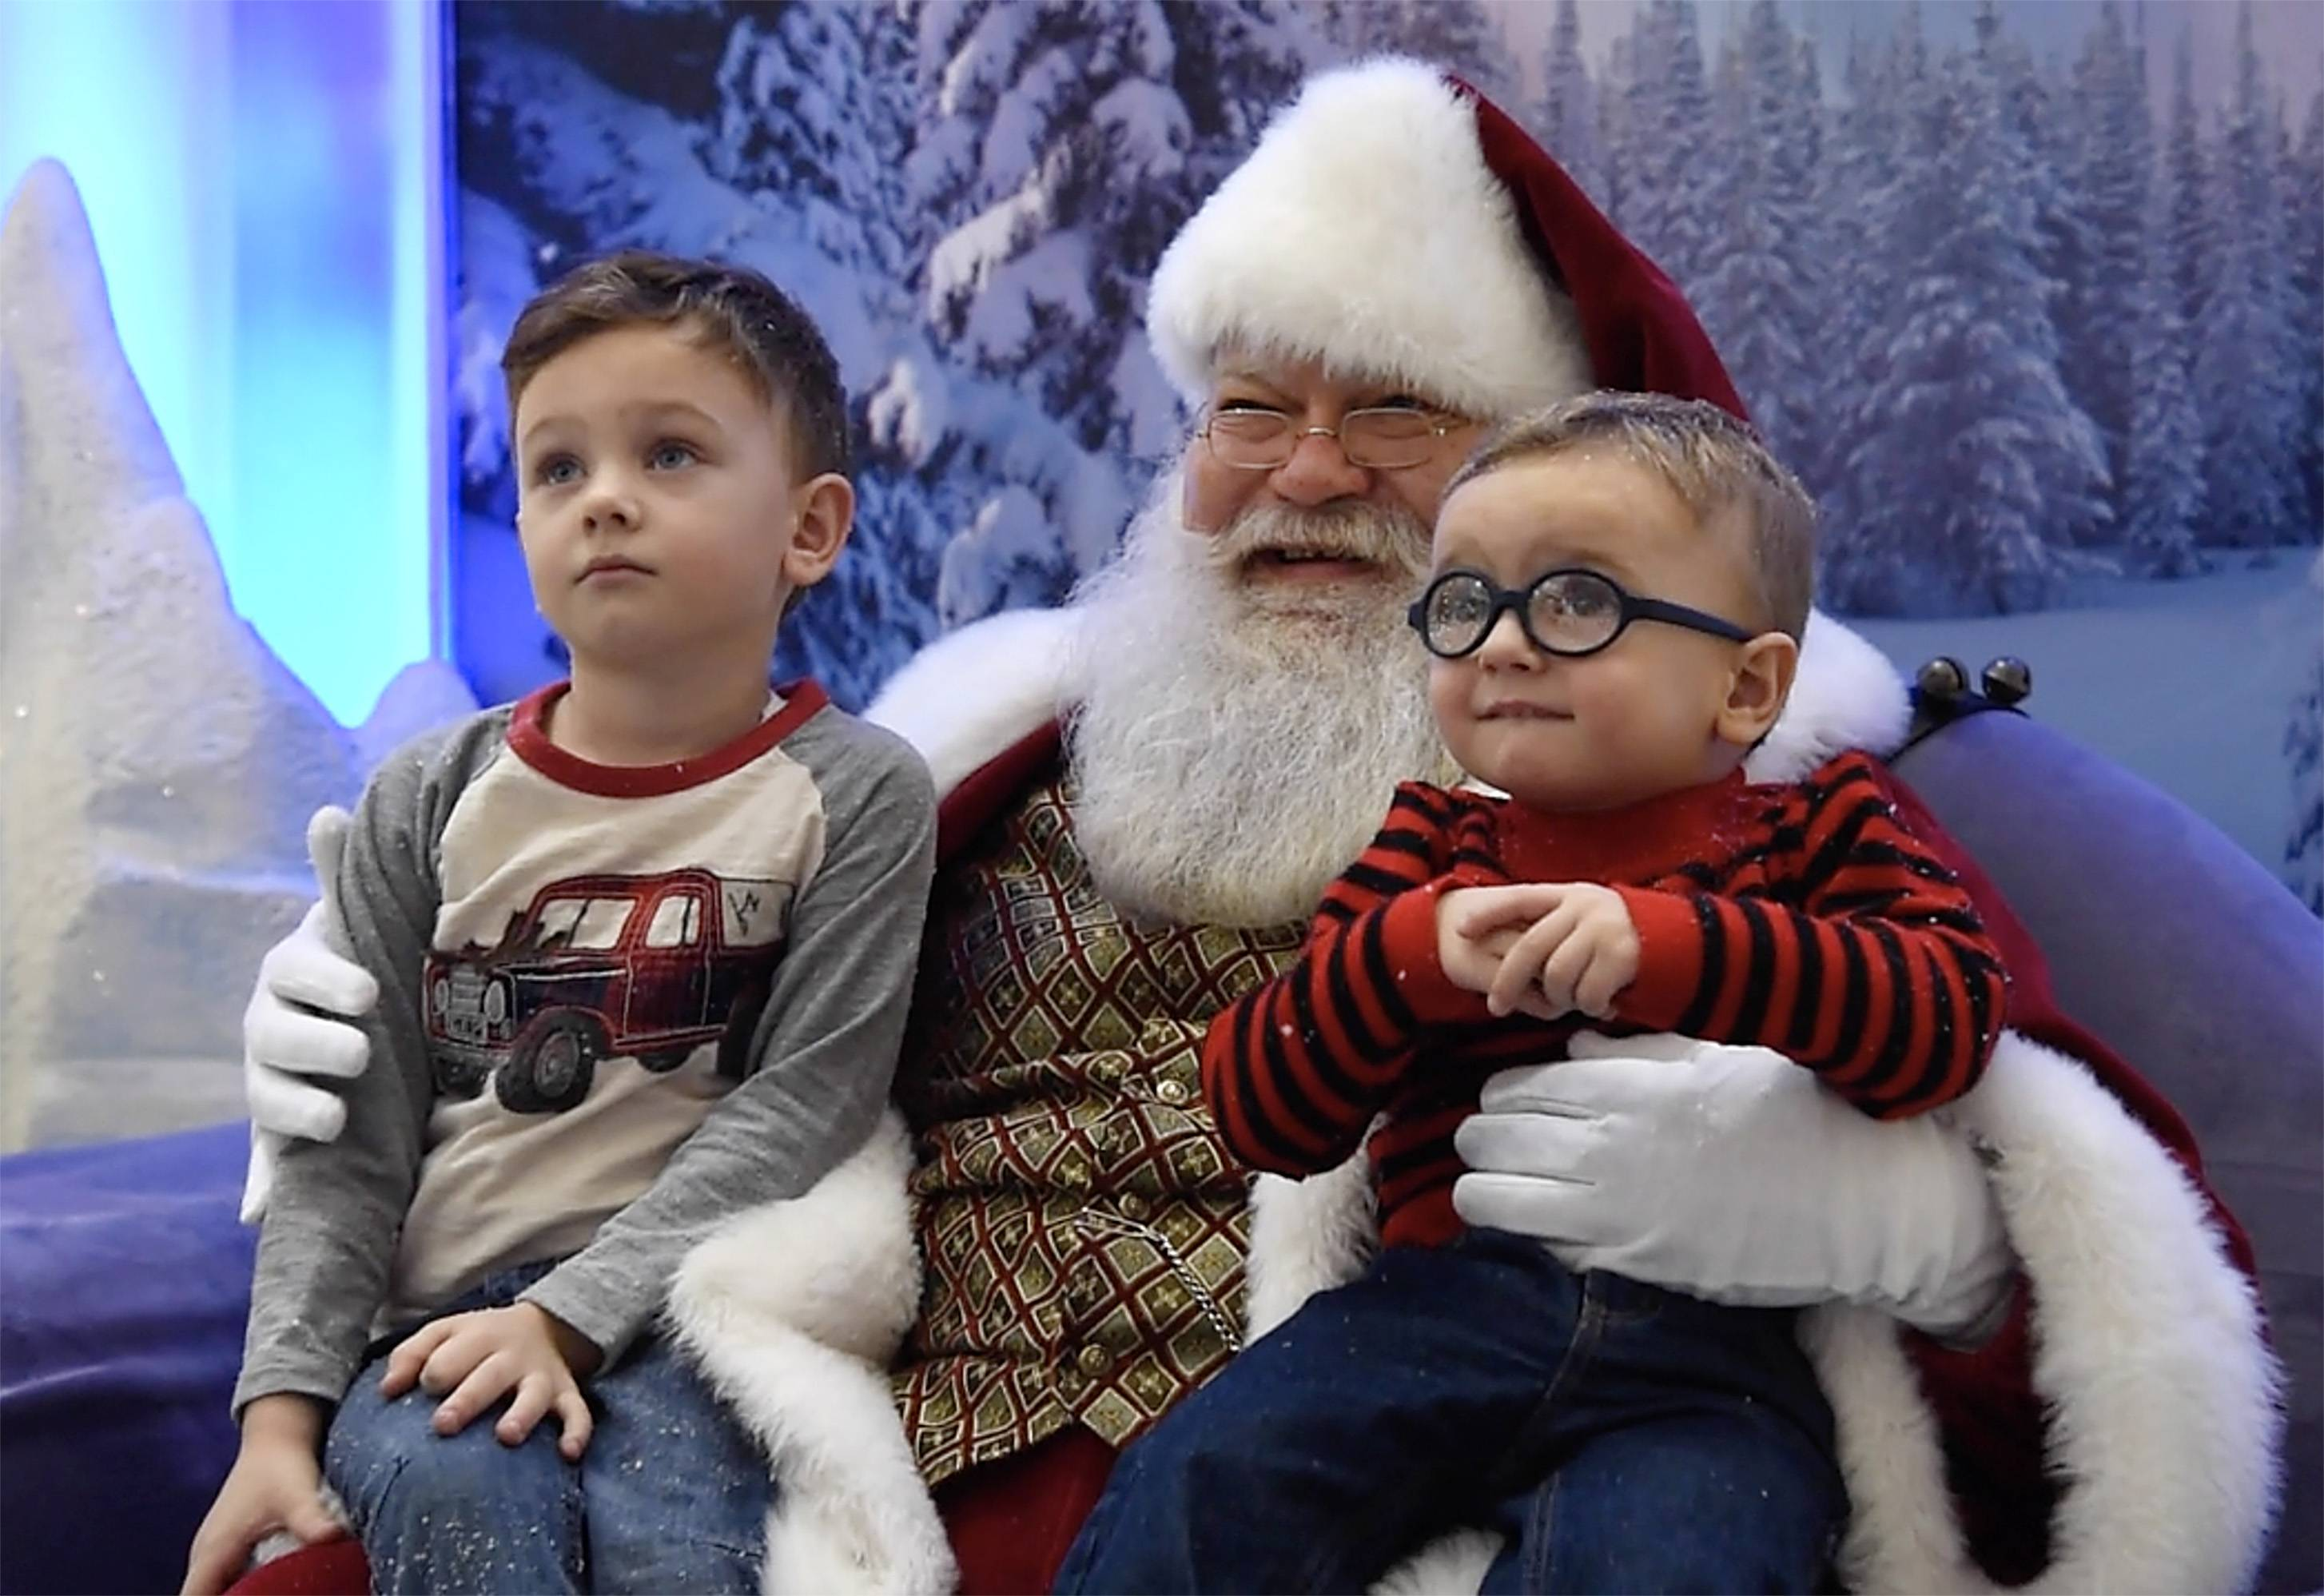 Lucas Basa, 4½, of Arlington Heights and his brother Julian, 2, concentrate on the camera while they sit on Santa's lap at Woodfield Mall in Schaumburg.